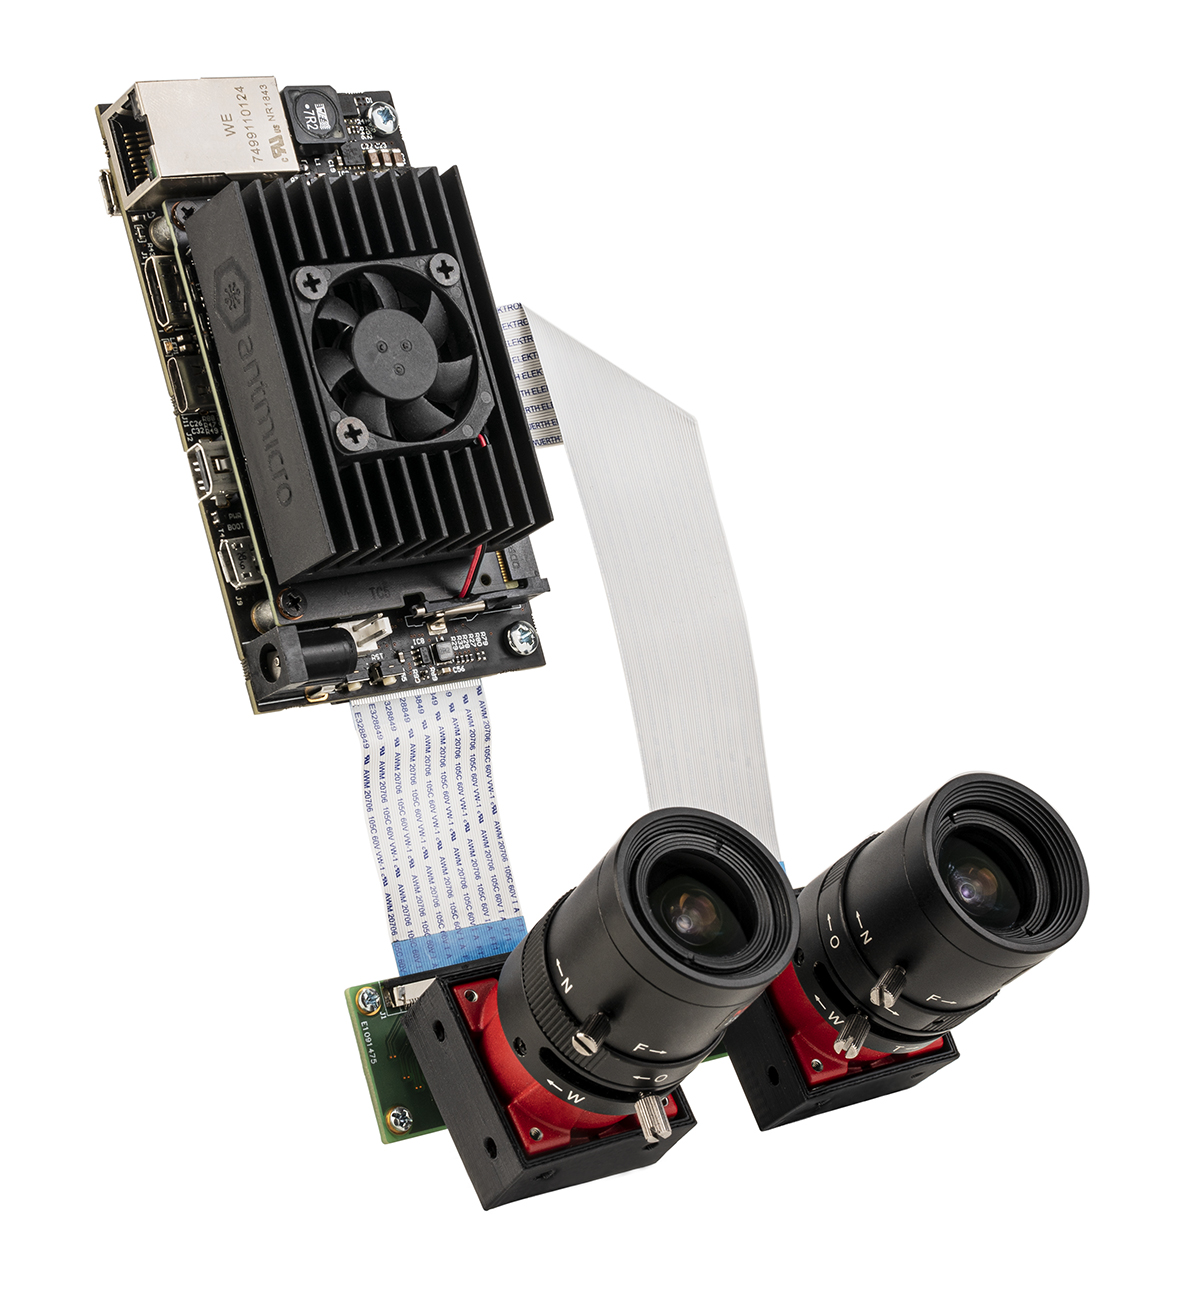 Nvidia Jetson Nano on Antmicro's baseboard with Allied Vision's Alvium cameras